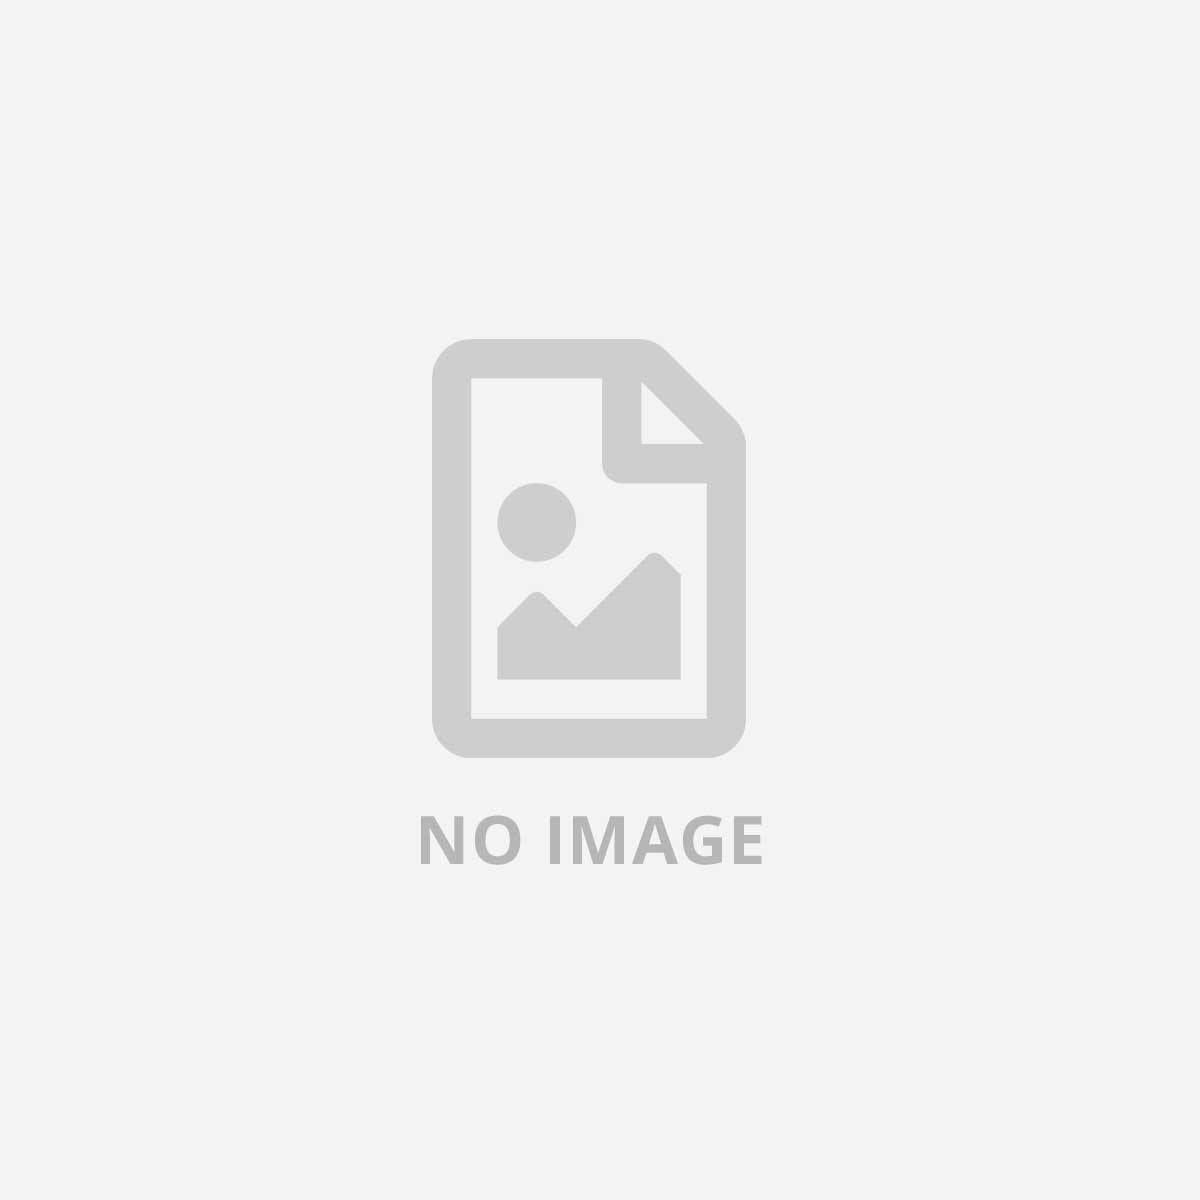 NILOX PCI EXP 1 PARALLEL LOW PROF ADAPTER